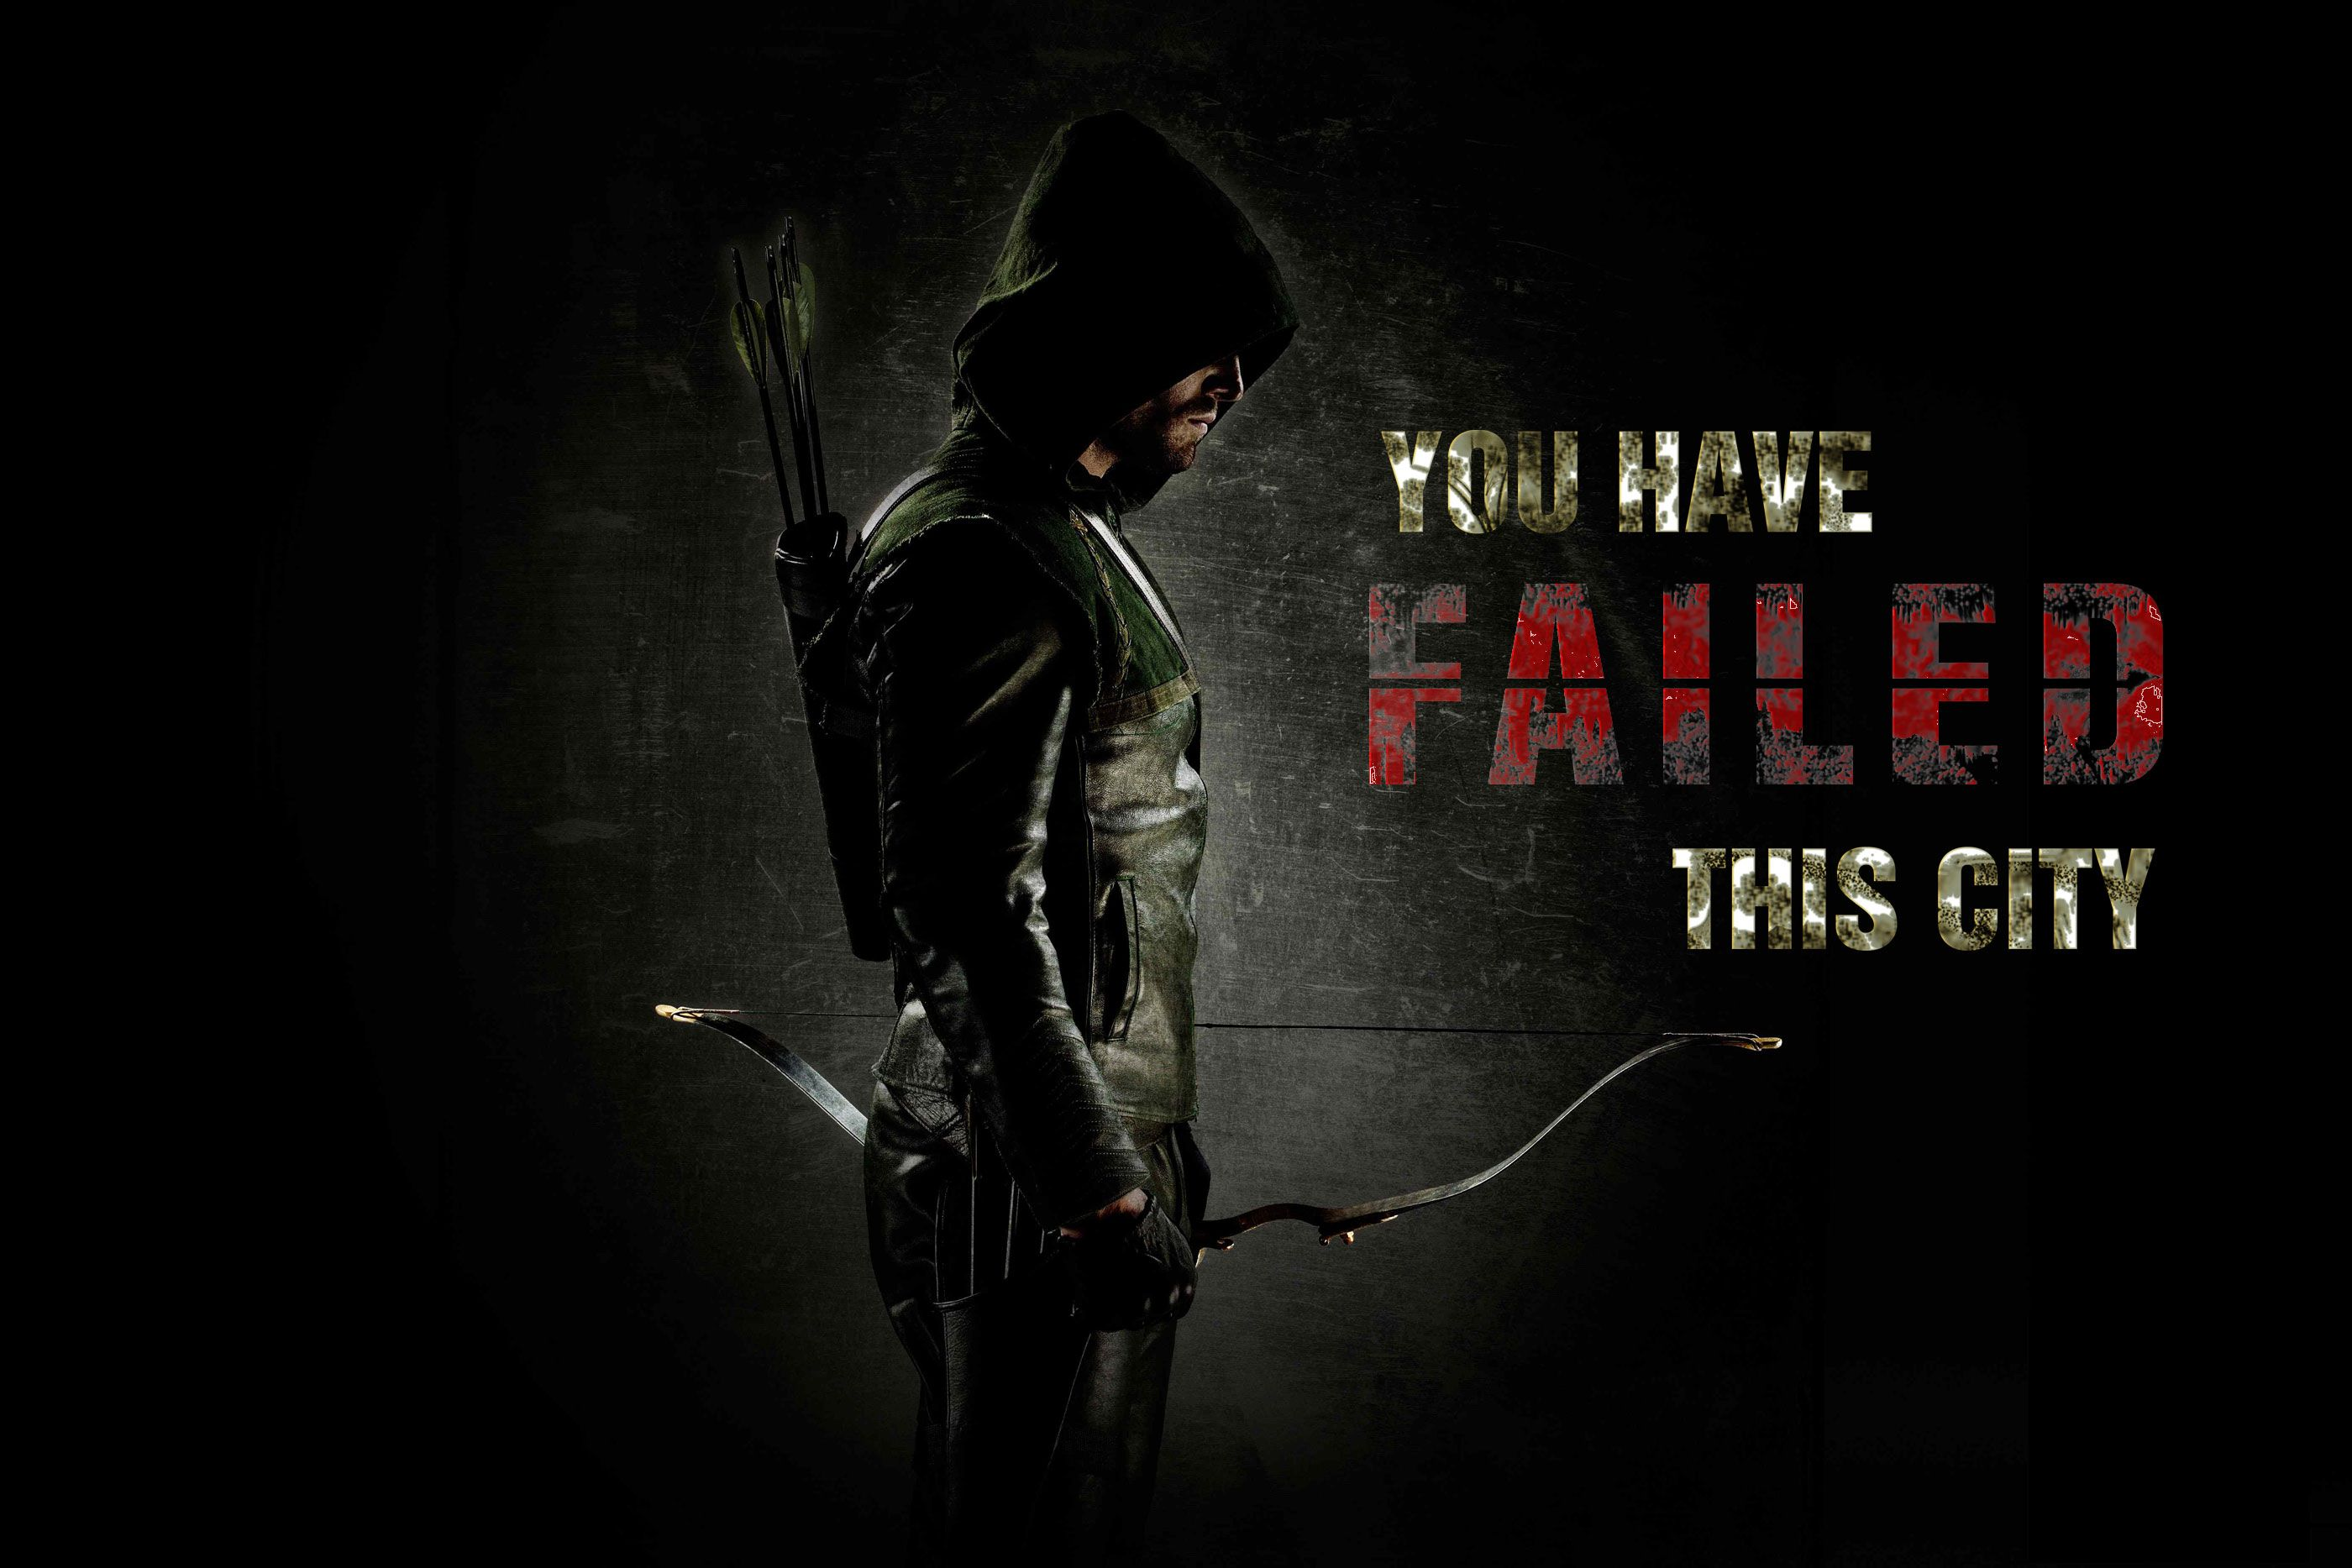 DC Comics Arrow TV Series You Have Failed This City Photo Refrigerator Magnet